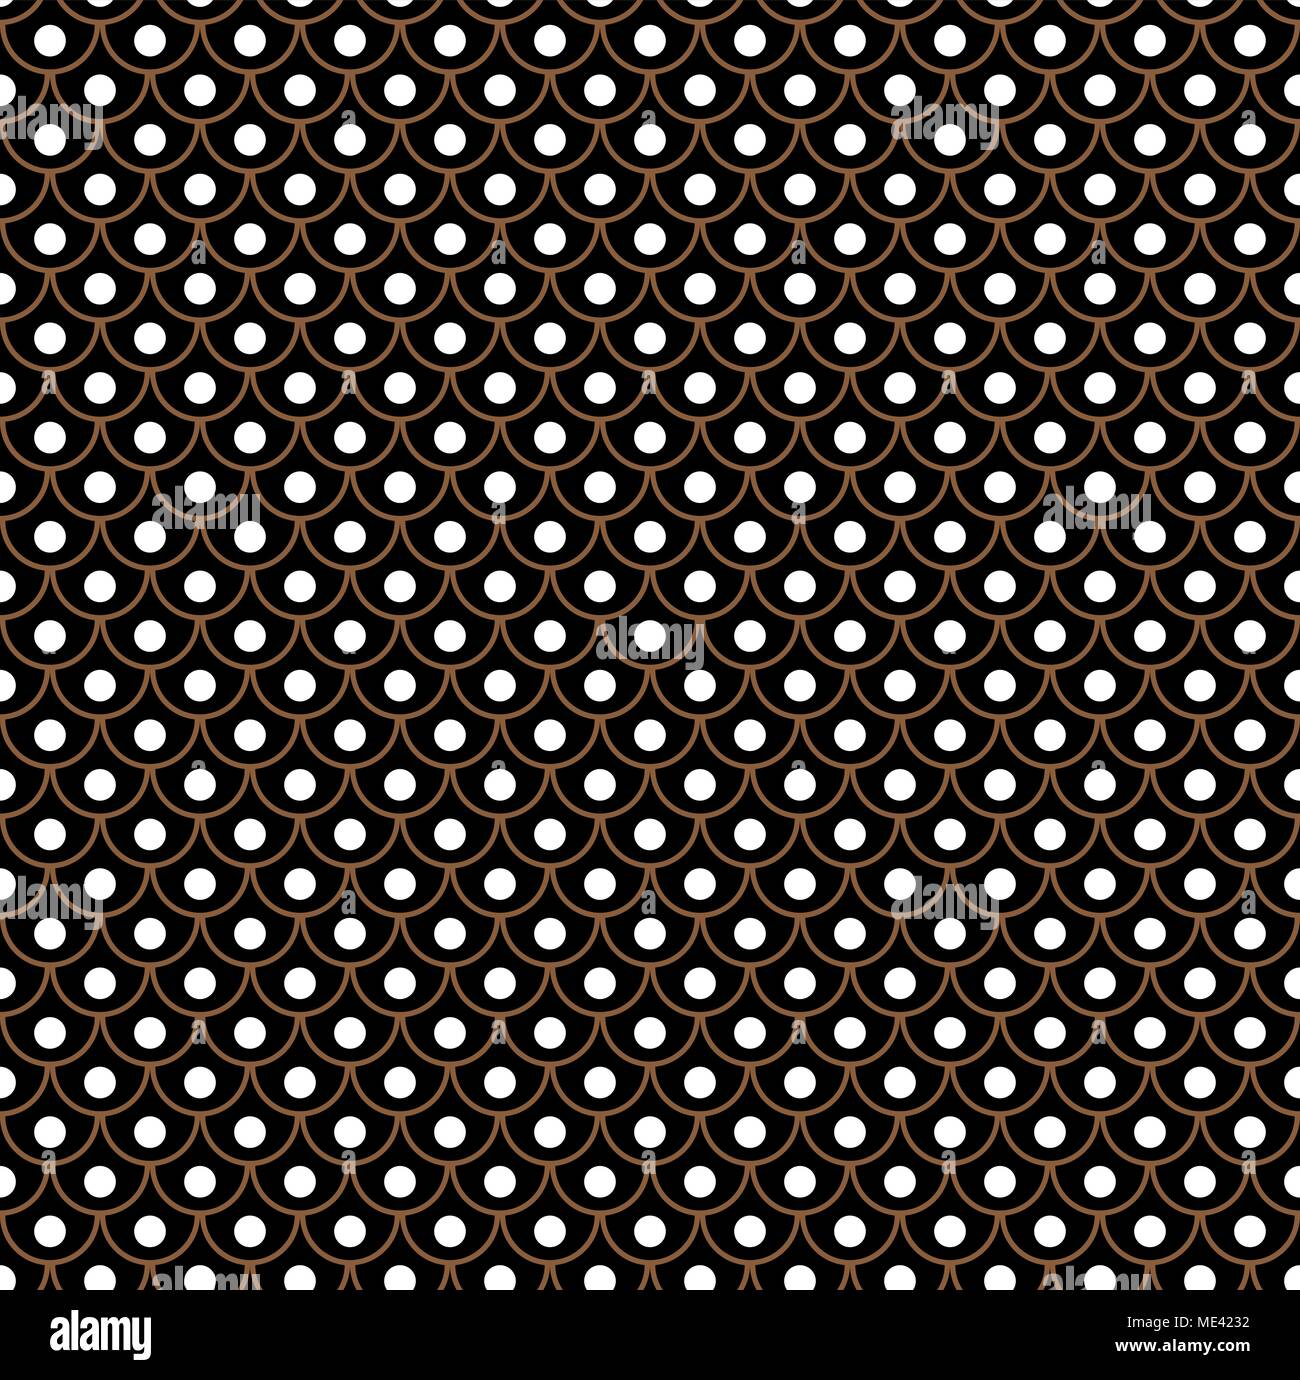 geometric fish scales chinese seamless pattern wavy roof tile